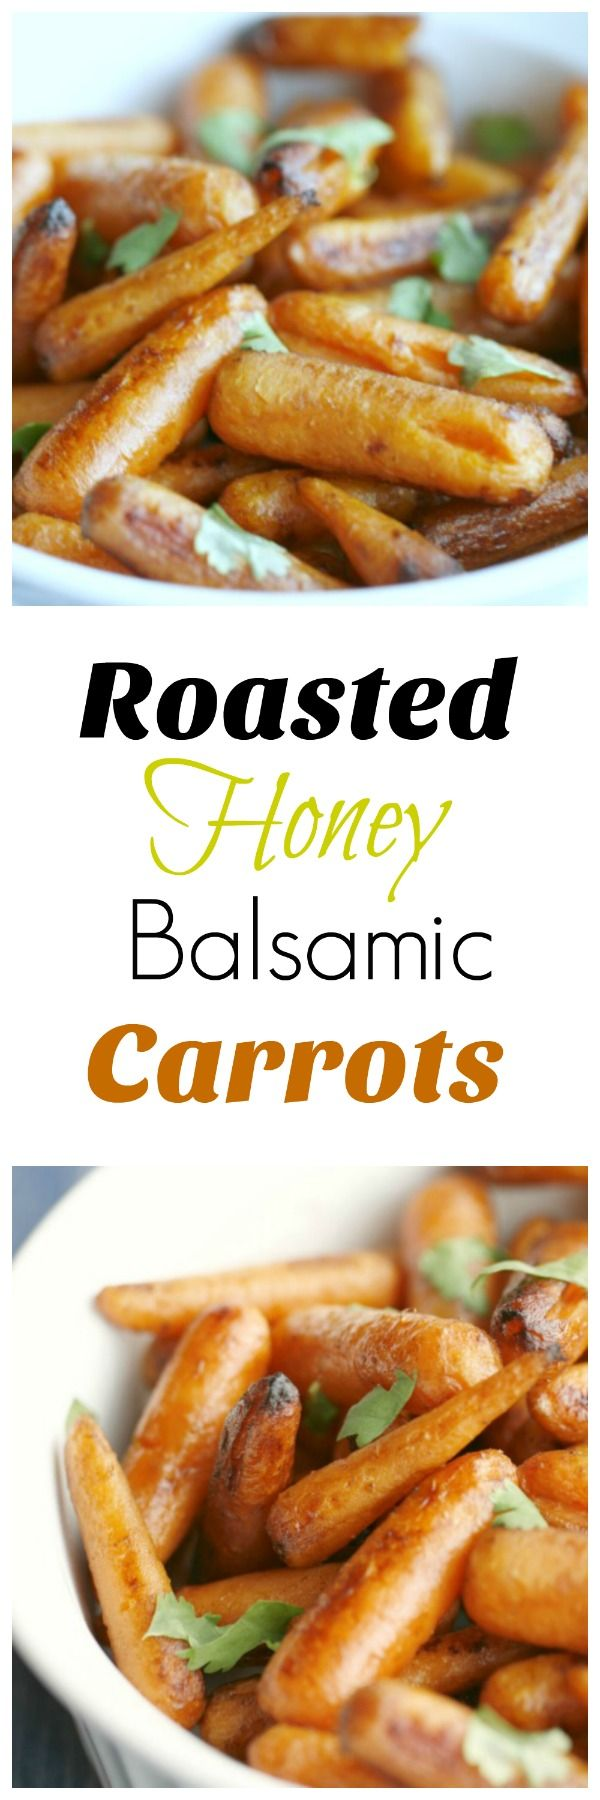 A simple and healthy way to enjoy carrots! A recipe the whole family will love. 21 Day Fix approved.